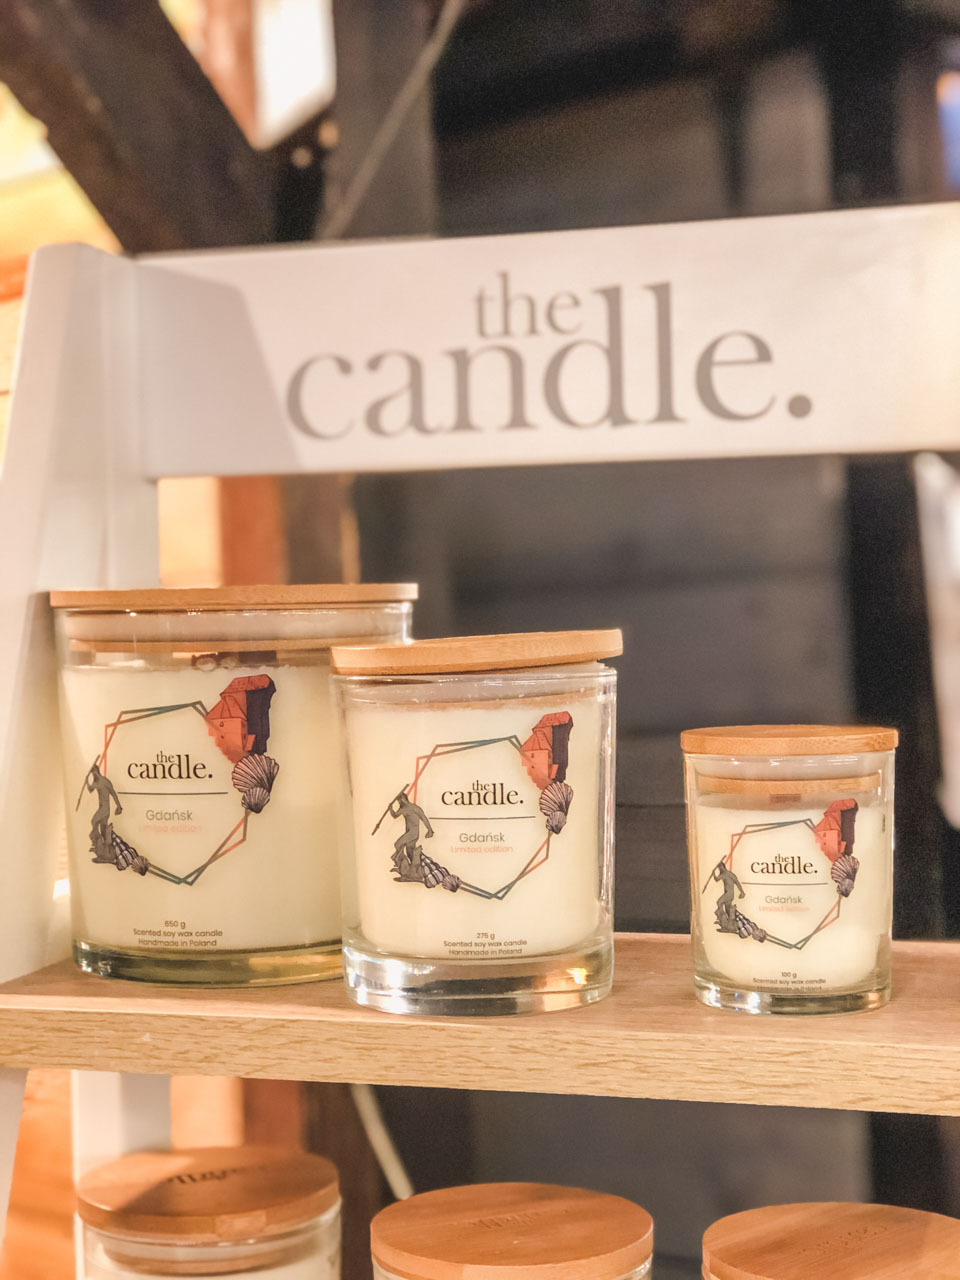 Three candles displayed on a wooden shelf